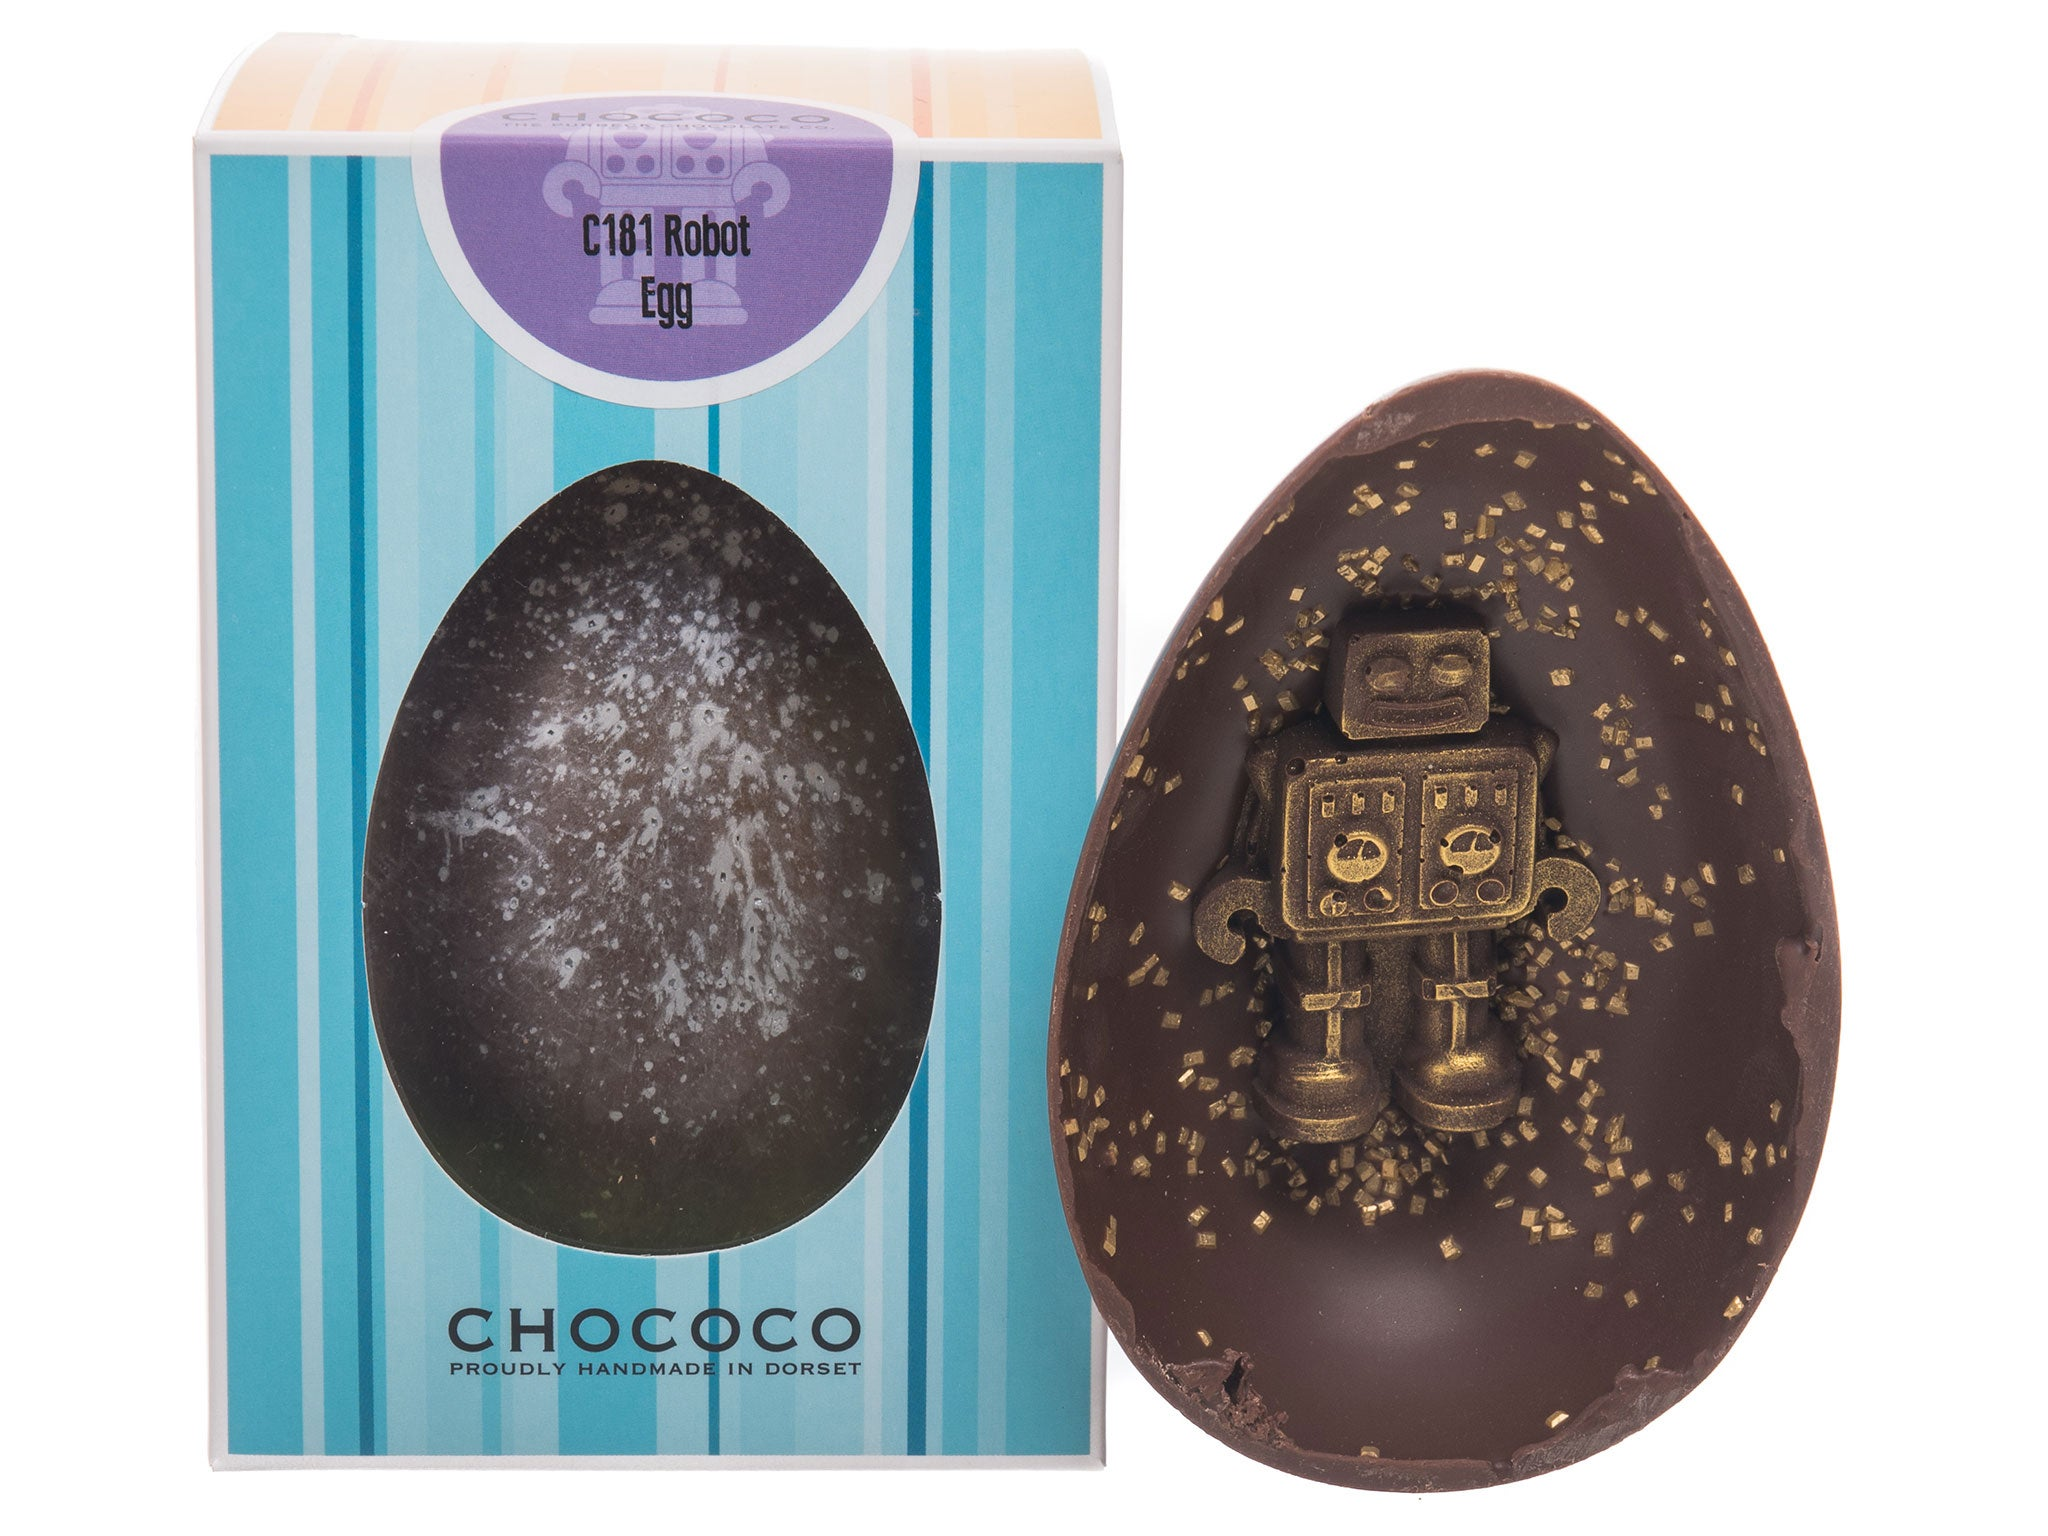 Easter 2015: 15 best chocolate eggs for kids | The Independent